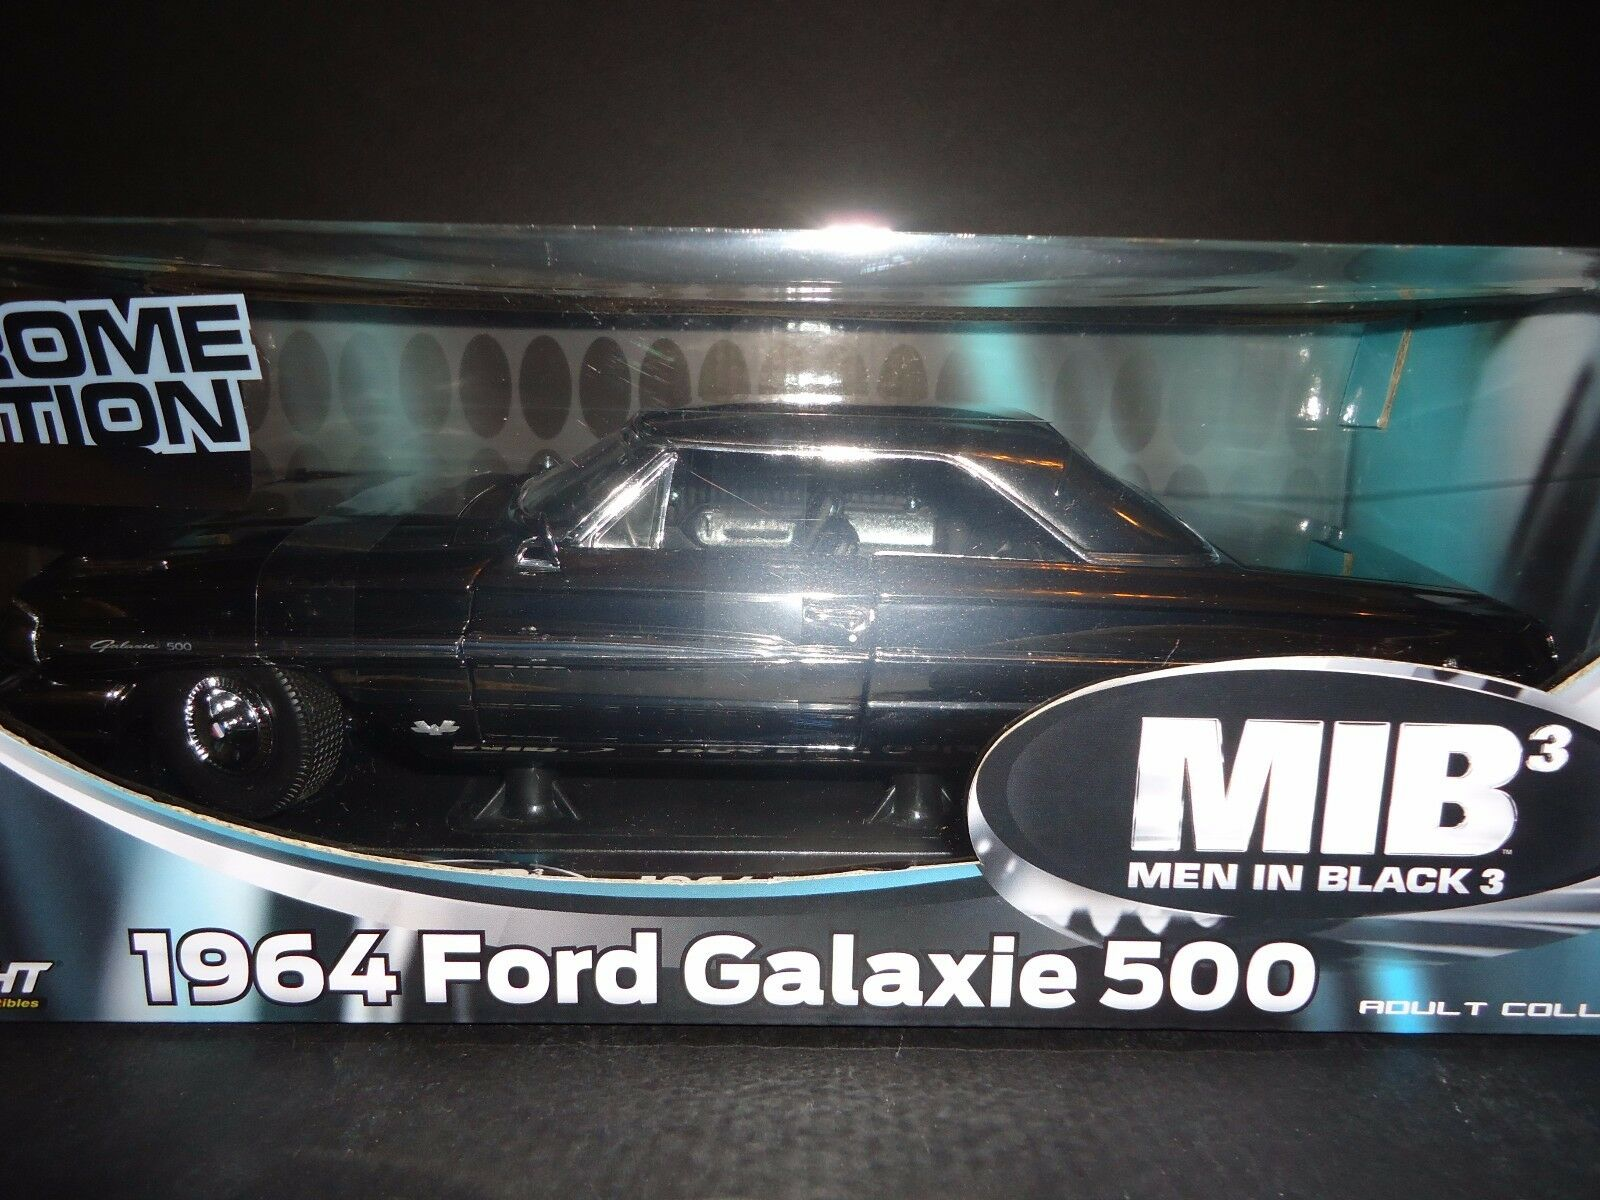 Greenlight Ford Galaxie 500 1964 MIBIII Chrome 1 18 Limited Edition